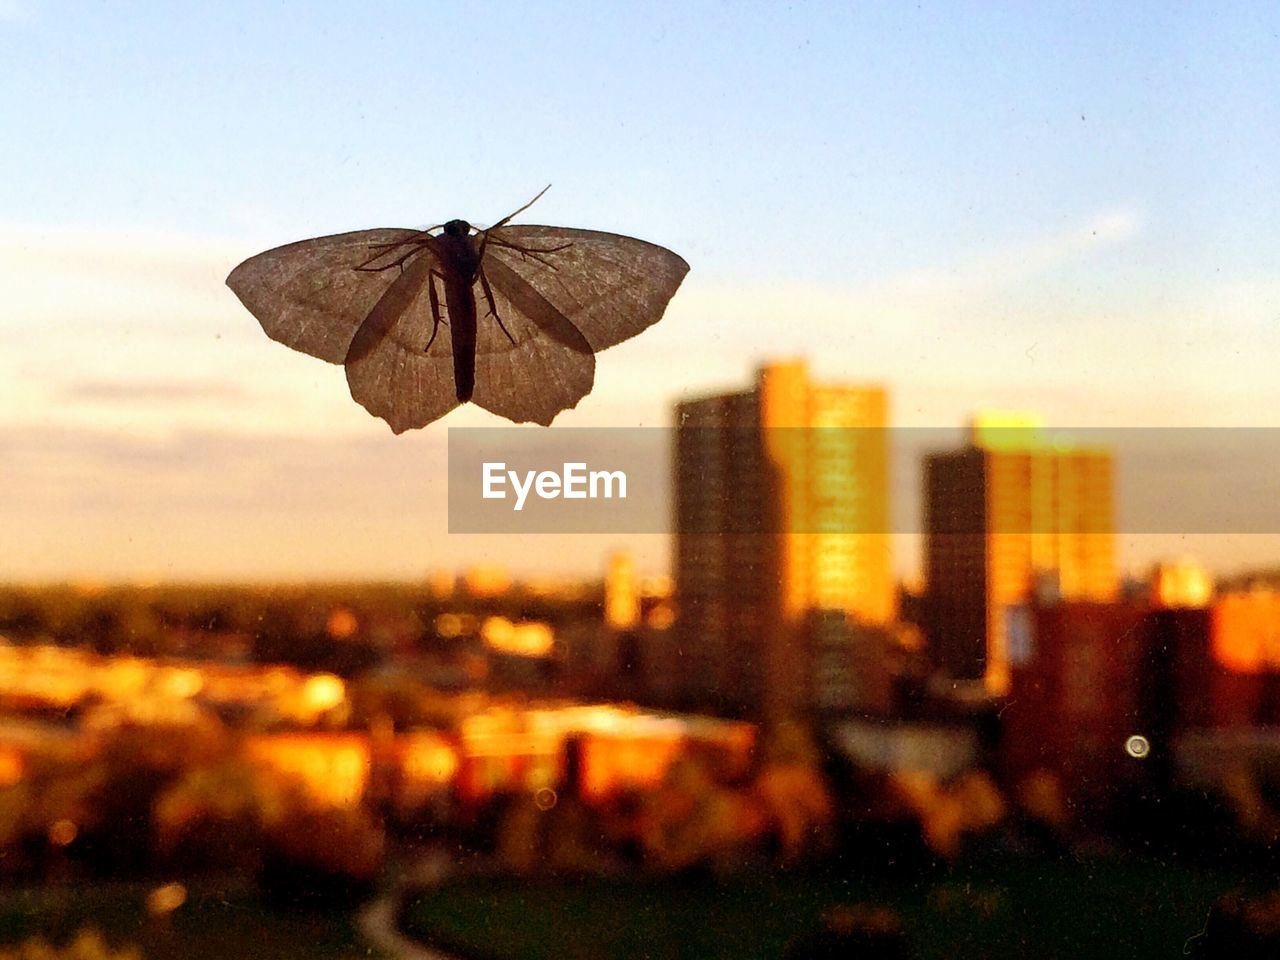 sky, focus on foreground, building exterior, sunset, close-up, architecture, built structure, nature, no people, invertebrate, city, insect, outdoors, animal wing, one animal, building, animal themes, animal, animals in the wild, animal wildlife, cityscape, butterfly - insect